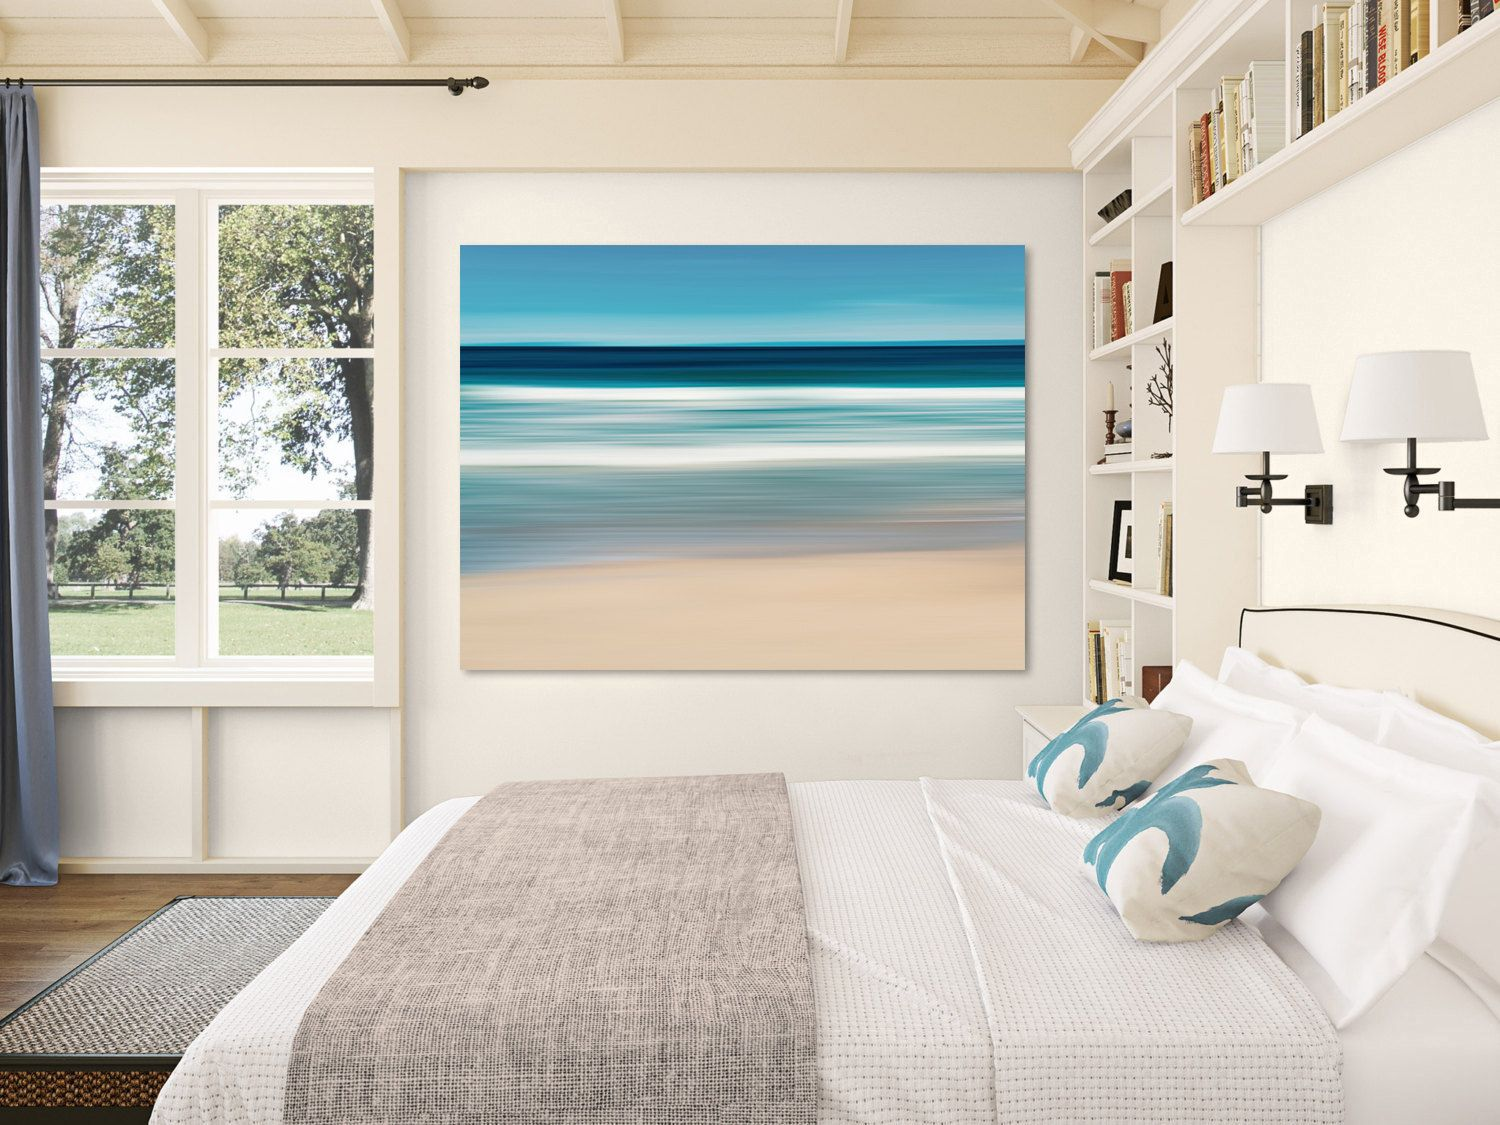 Fine art abstract photograph of South Beach on Marthas Vineyard, on a beautiful afternoon.  TITLE: South Beach Afternoon  * The photo will be printed directly onto canvas and stretched over a 1.5 wooden frame. The canvas is finished with semi-matte UV- and scratch-resistant coating. Canvas gallery wraps can be hung directly, unframed, onto a wall as a painting would hang in a gallery. * Canvases are printed by a professional lab using premium archival inks, and are finished with hanging…